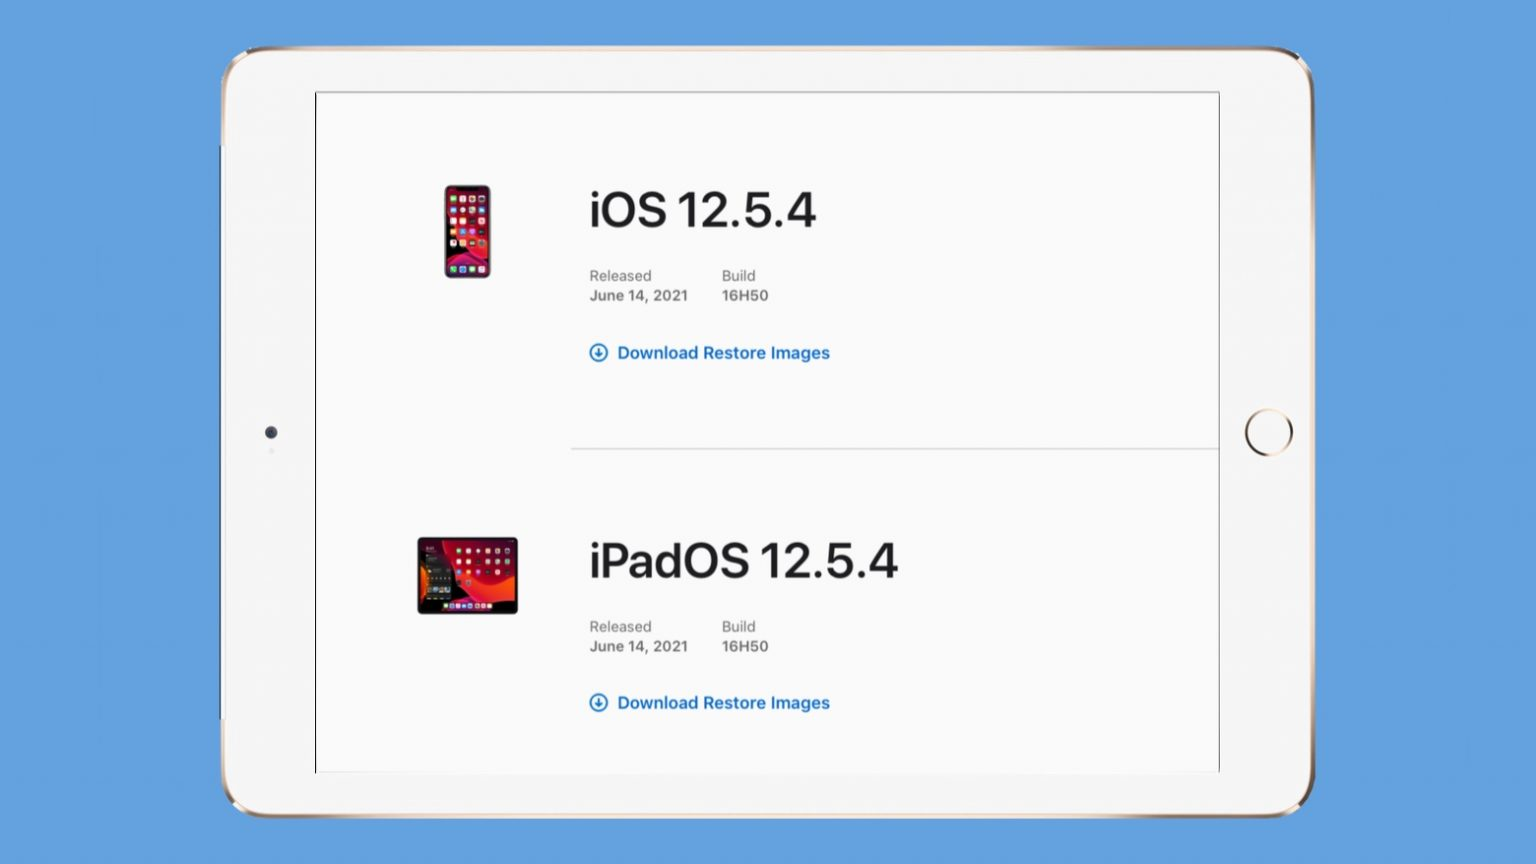 iOS 12.5.4 and iPadOS 12.5.4 close security holes for older iPhones, iPads